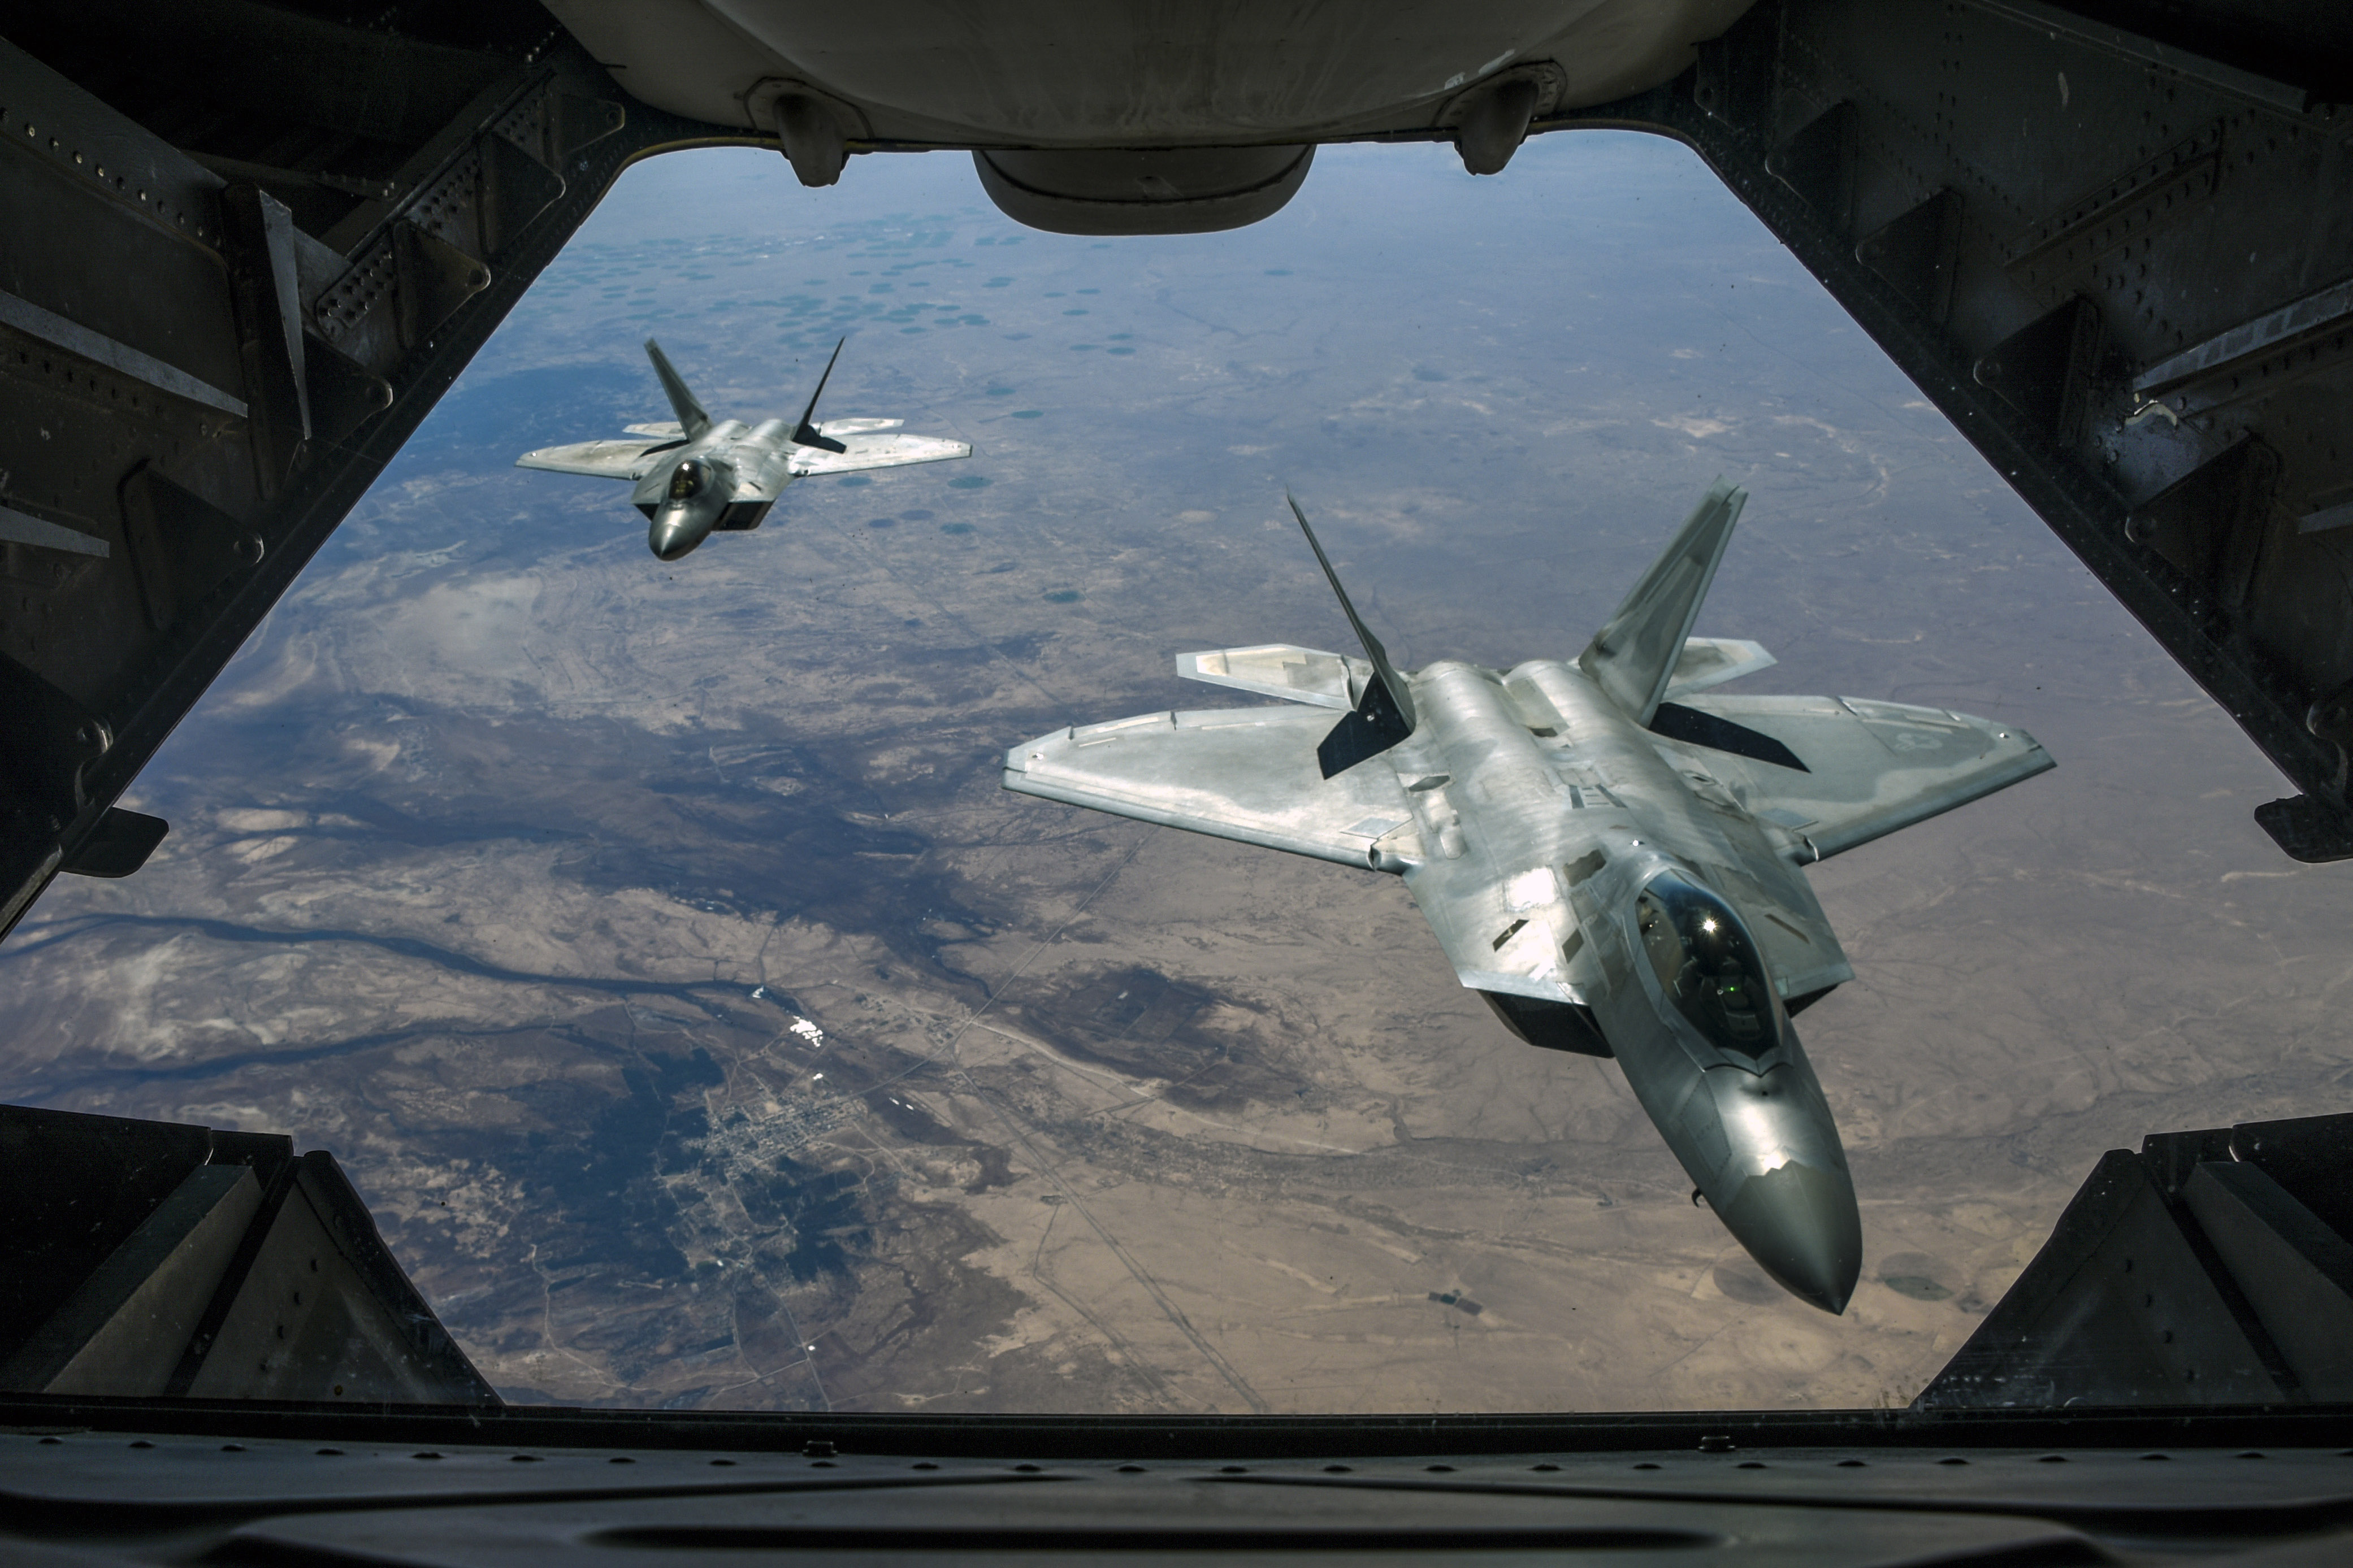 Us air force live chat